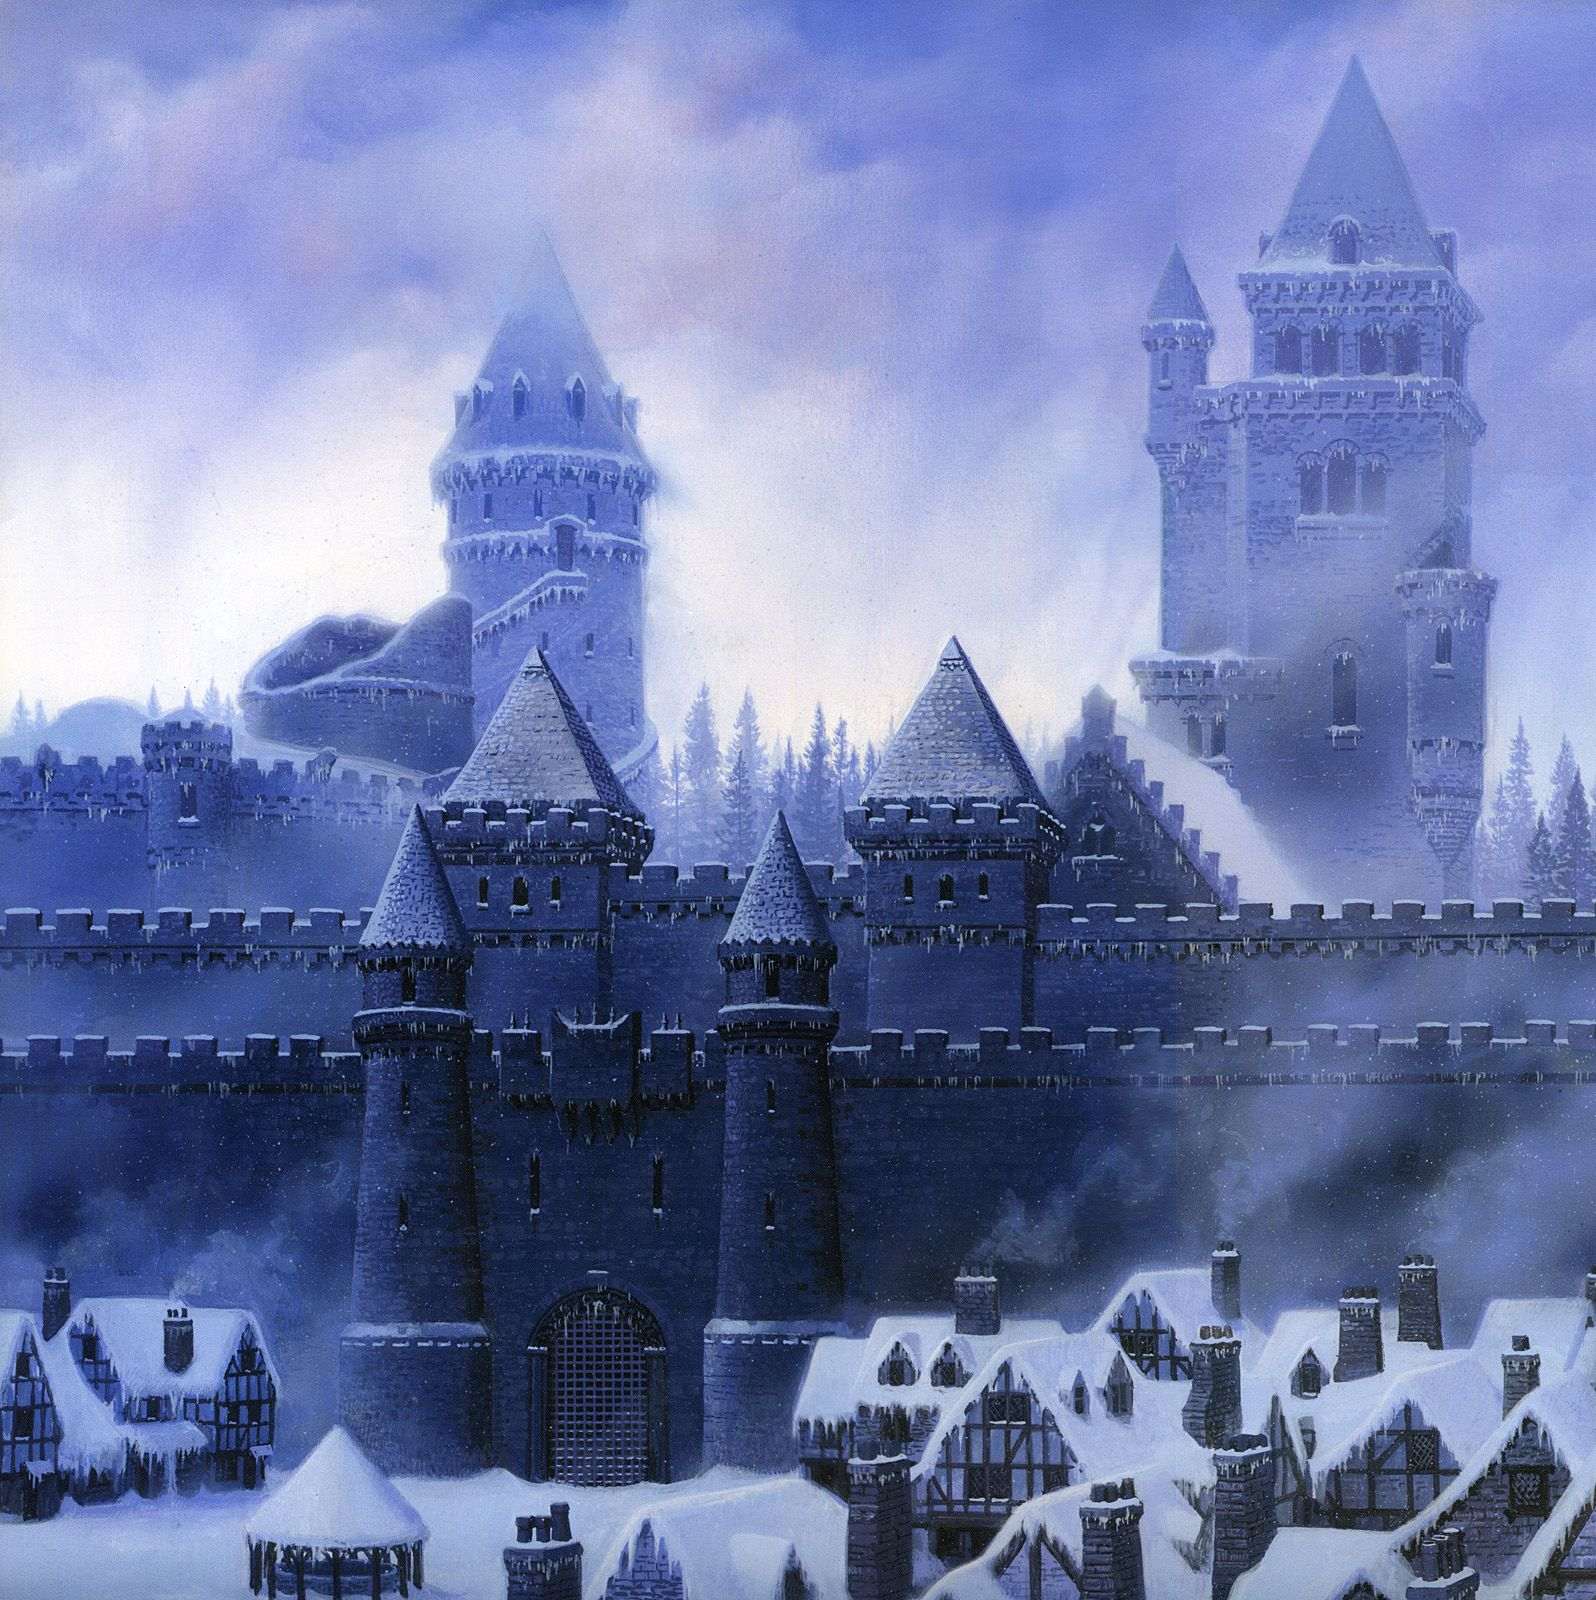 Ted Nasmith Song Of Ice And Fire Winterfell Konsept Sanati